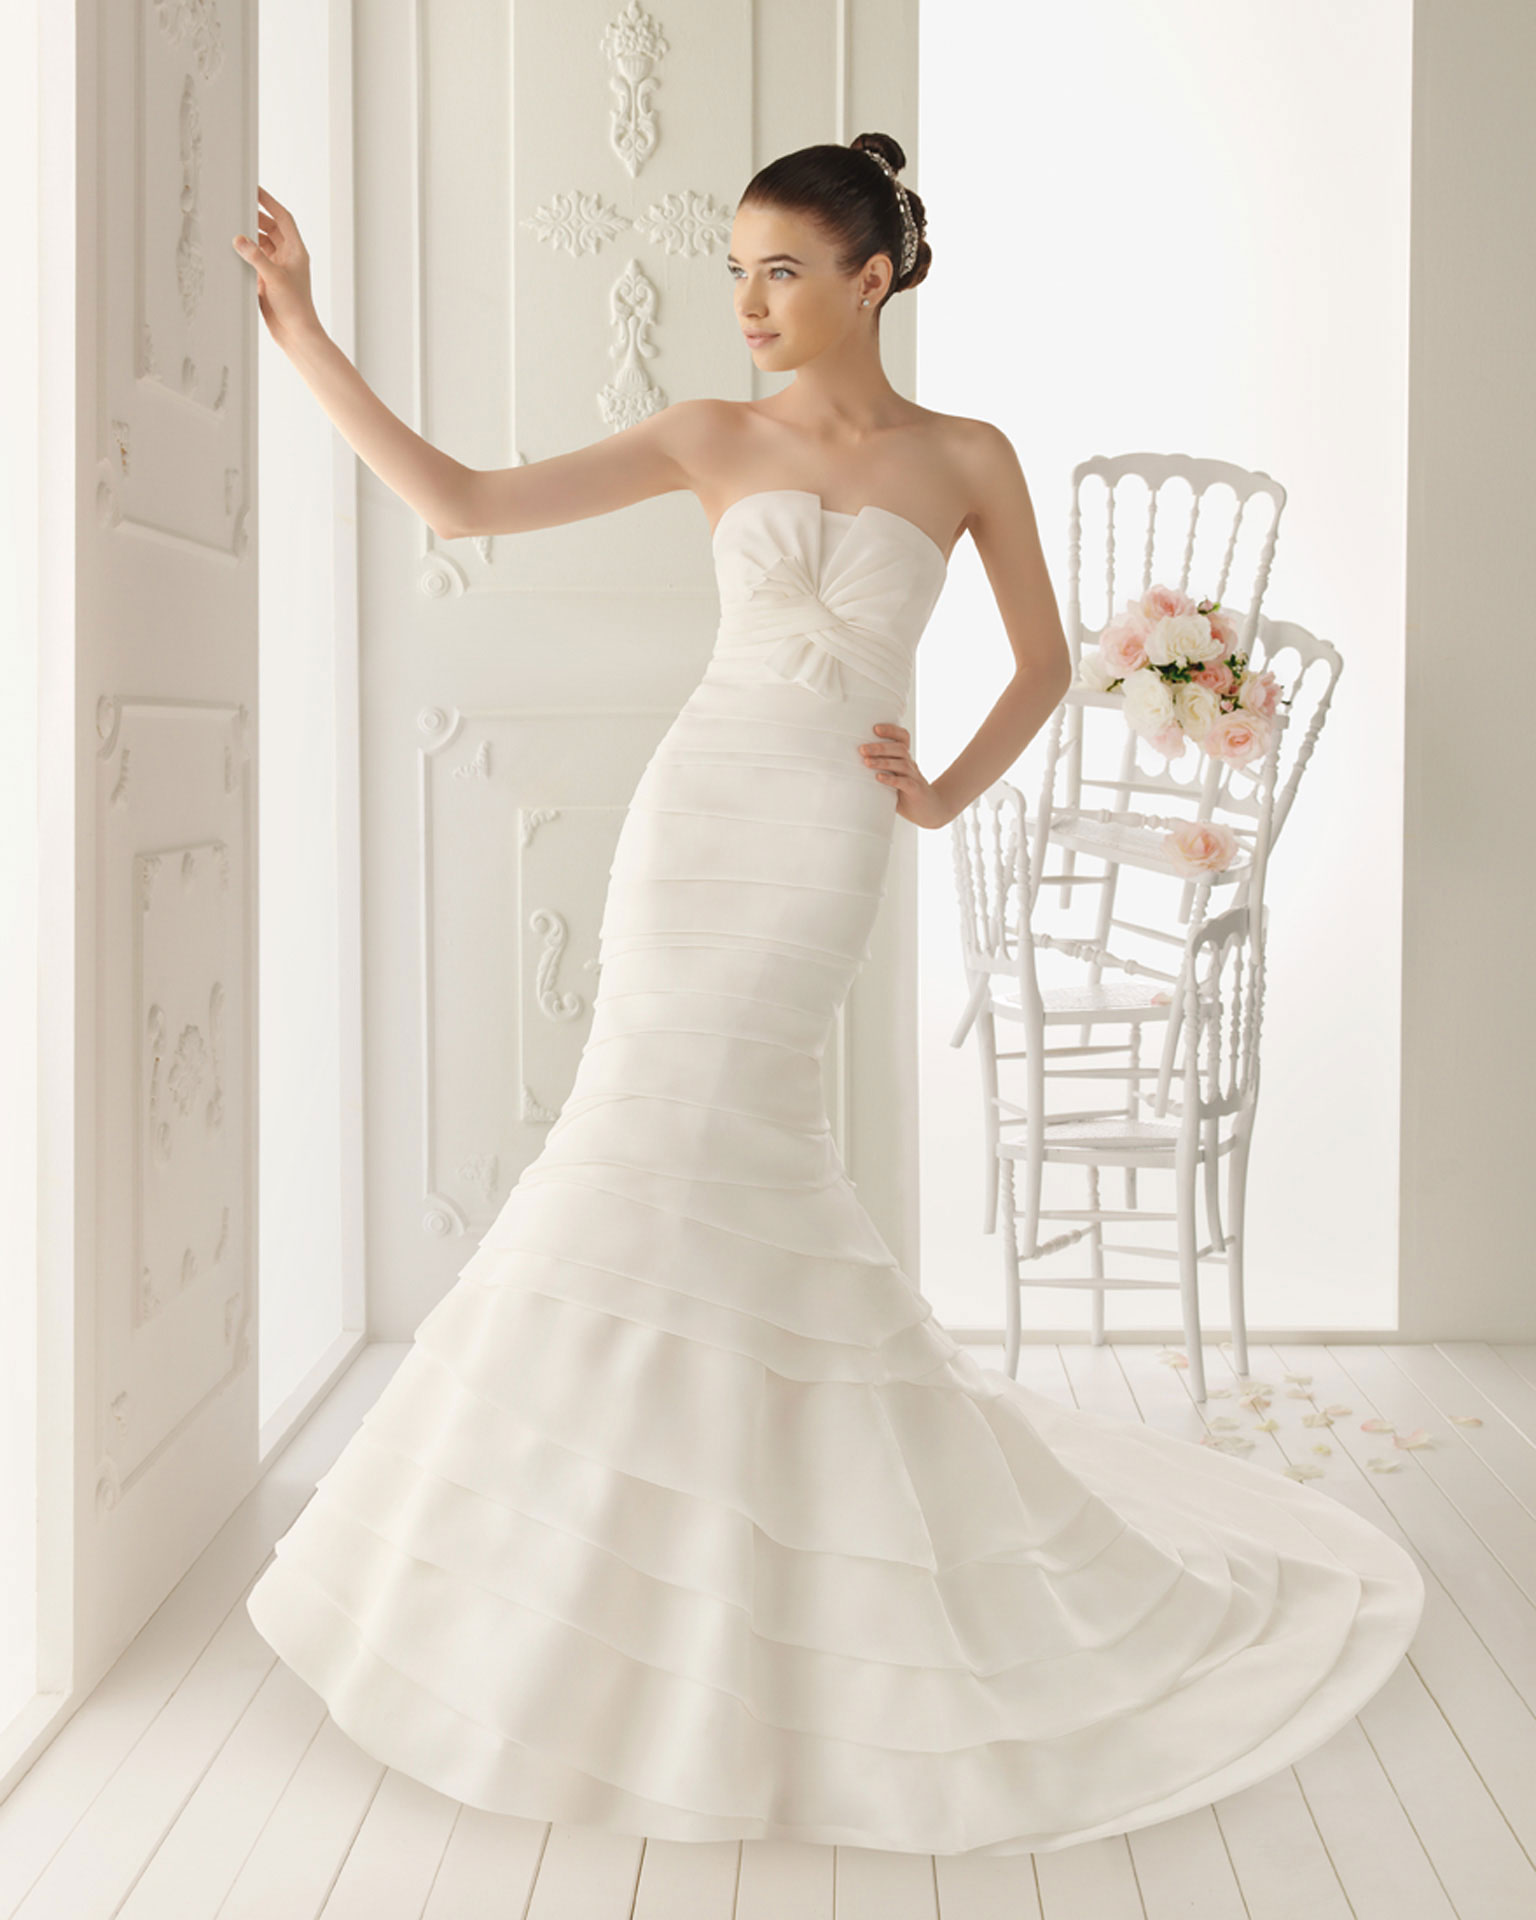 2013-wedding-dress-aire-barcelona-bridal-gowns-rolan.original